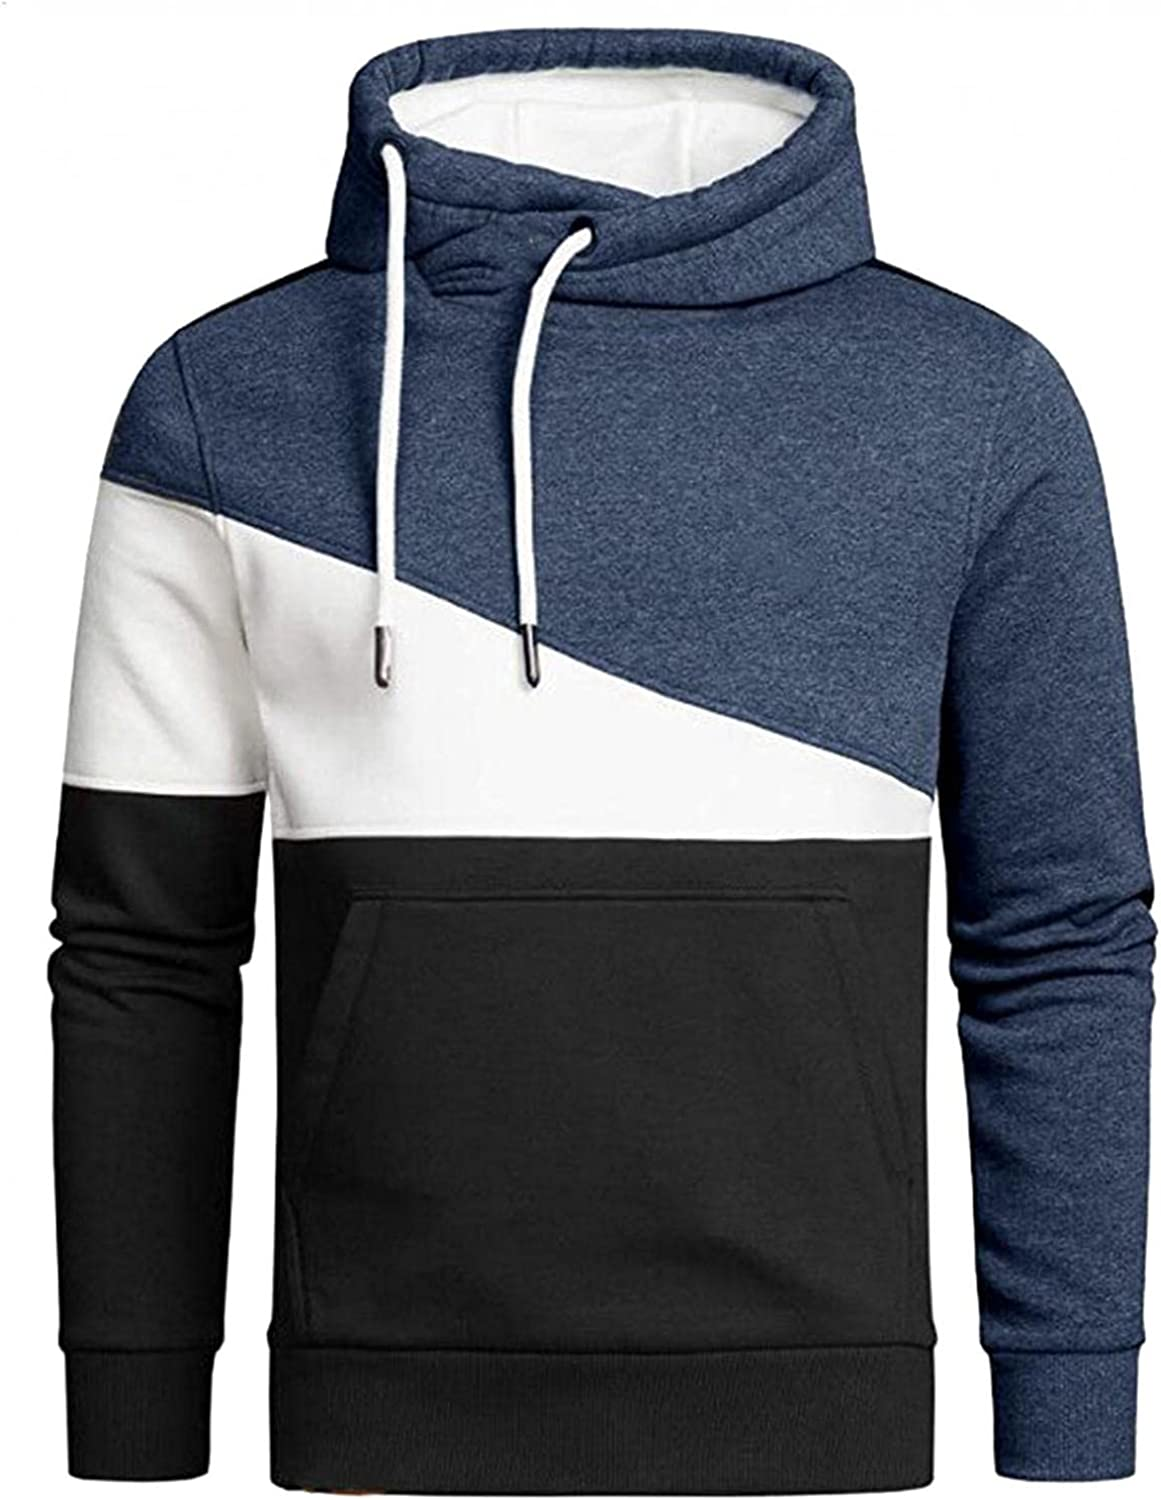 Hoodies for Men Mens Casual Dark Color Matching Long-sleeve Fashion Tether Pullover Windproof Top Fashion Hoodies Sweatshirt